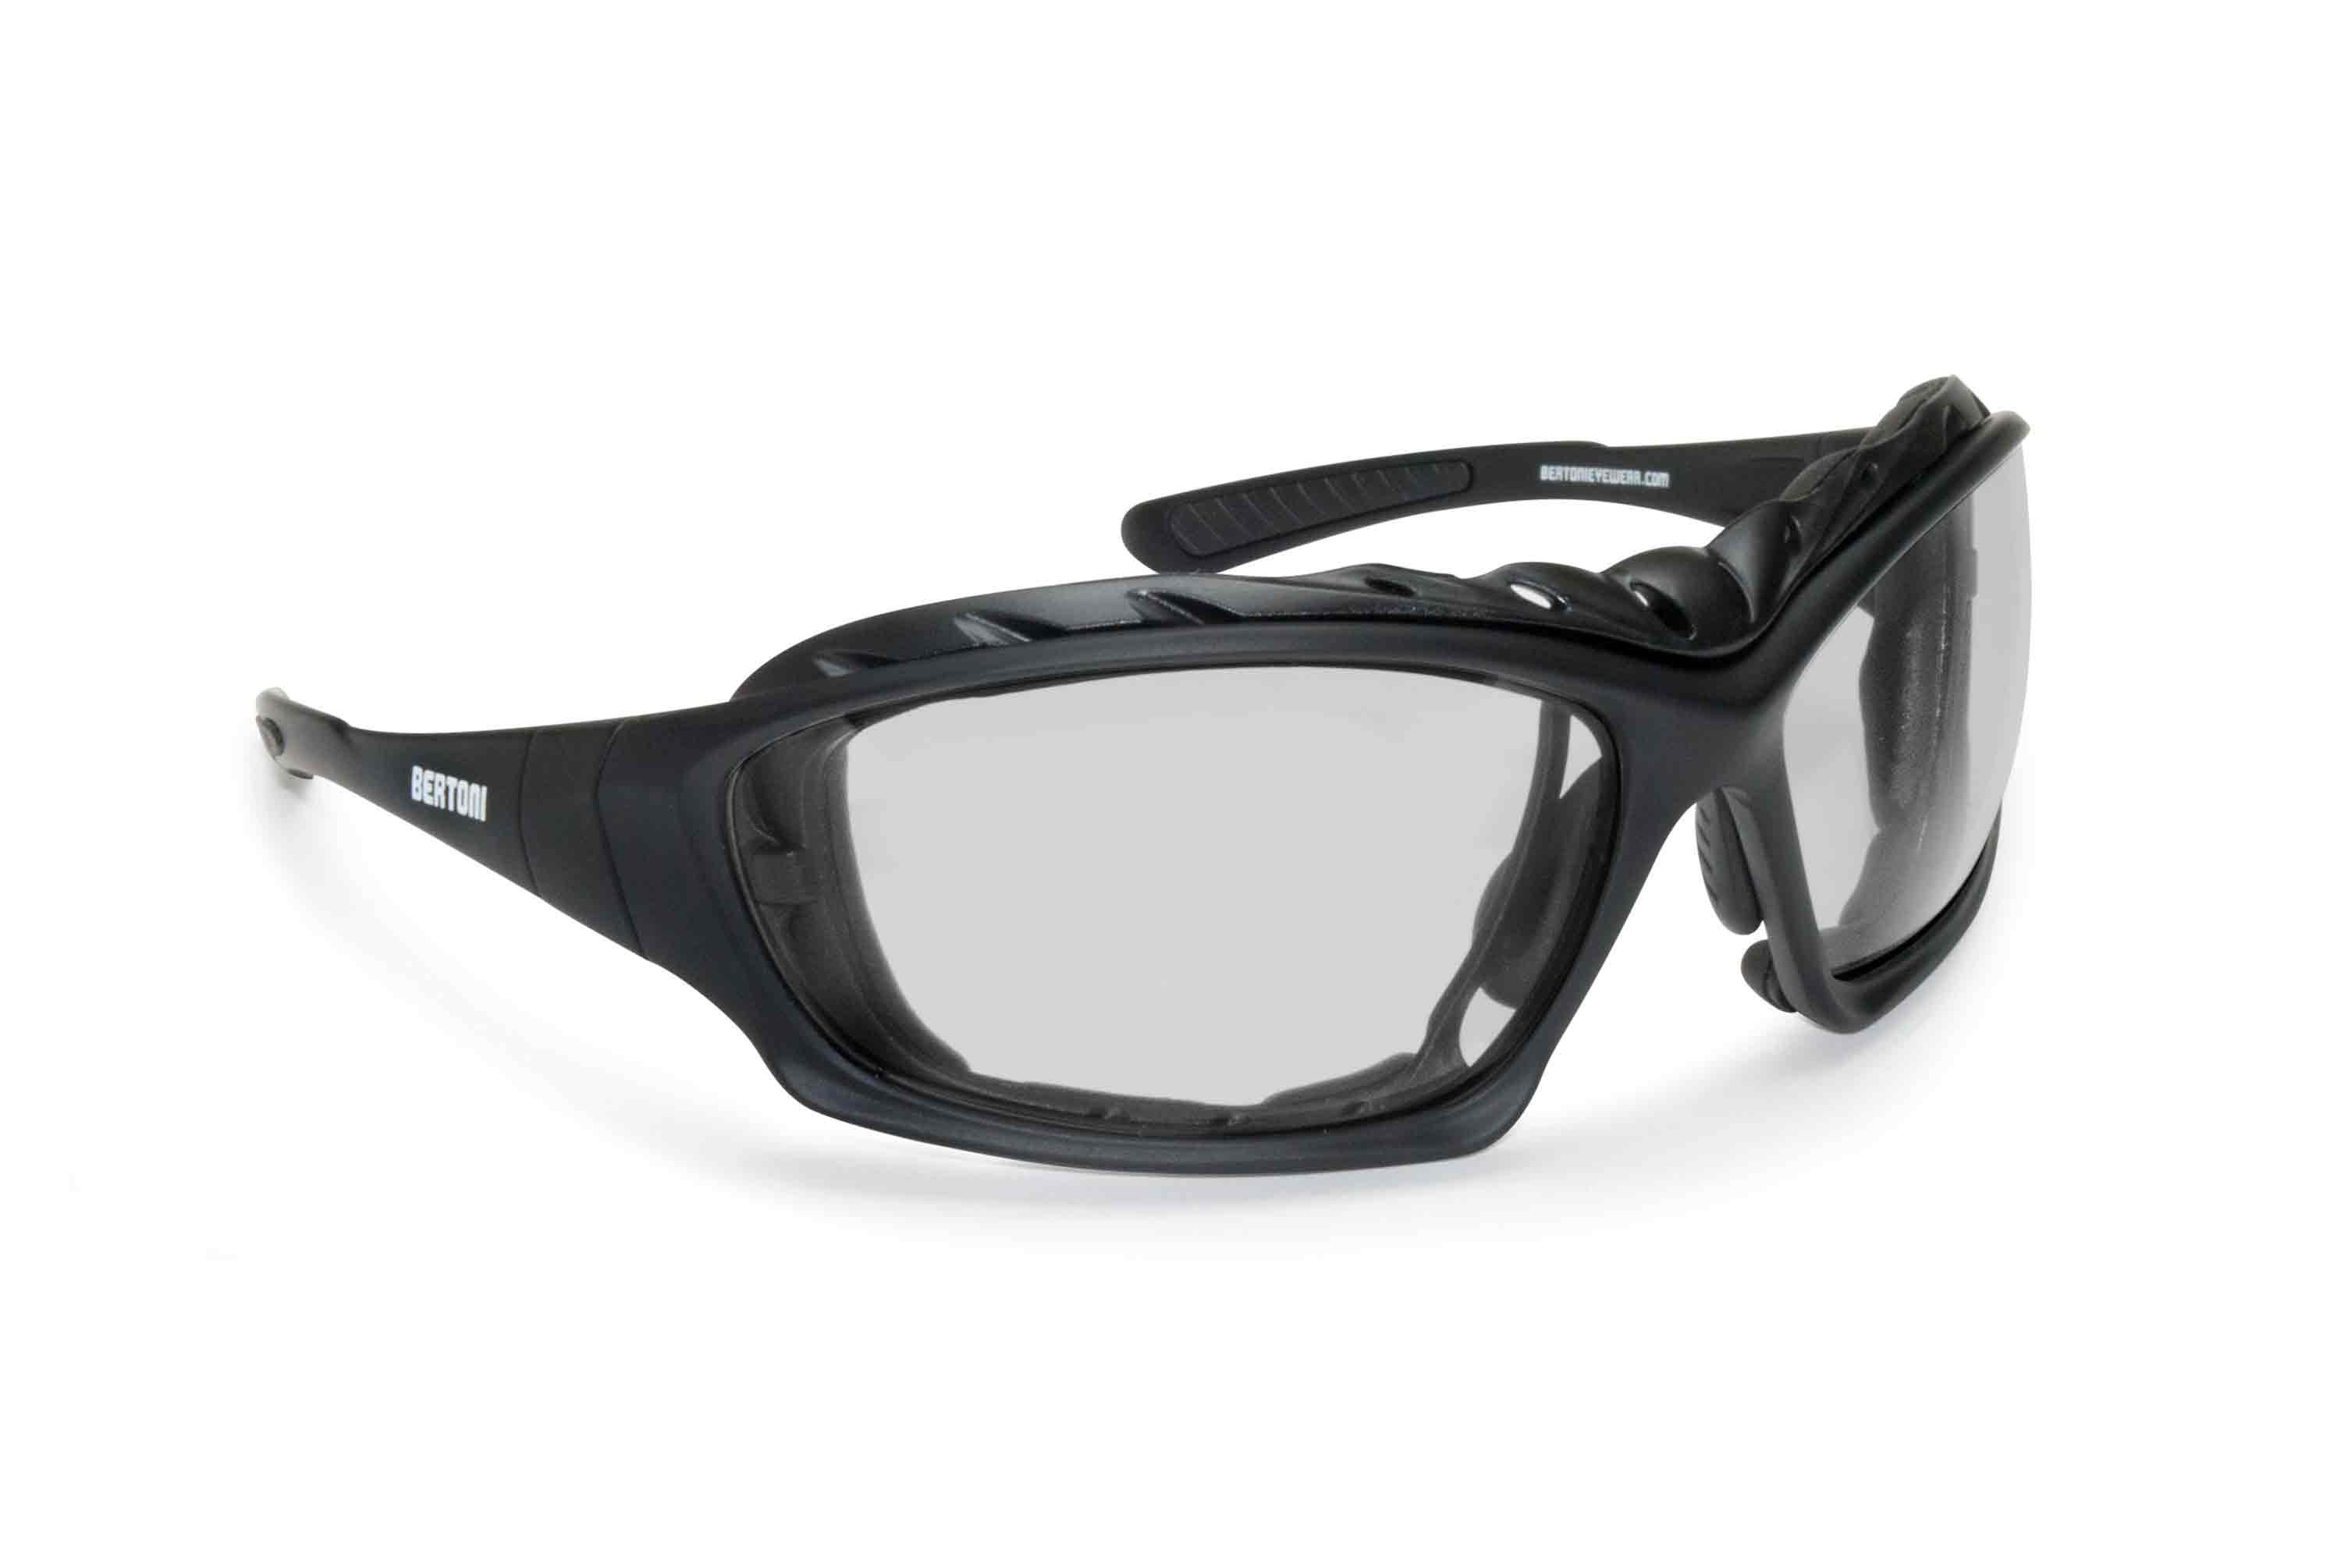 Motorcycle Goggles Sunglasses-  Antifog Lens - Interchangeable Arms and Strap - by Bertoni Italy - AF366A with Optical Insert